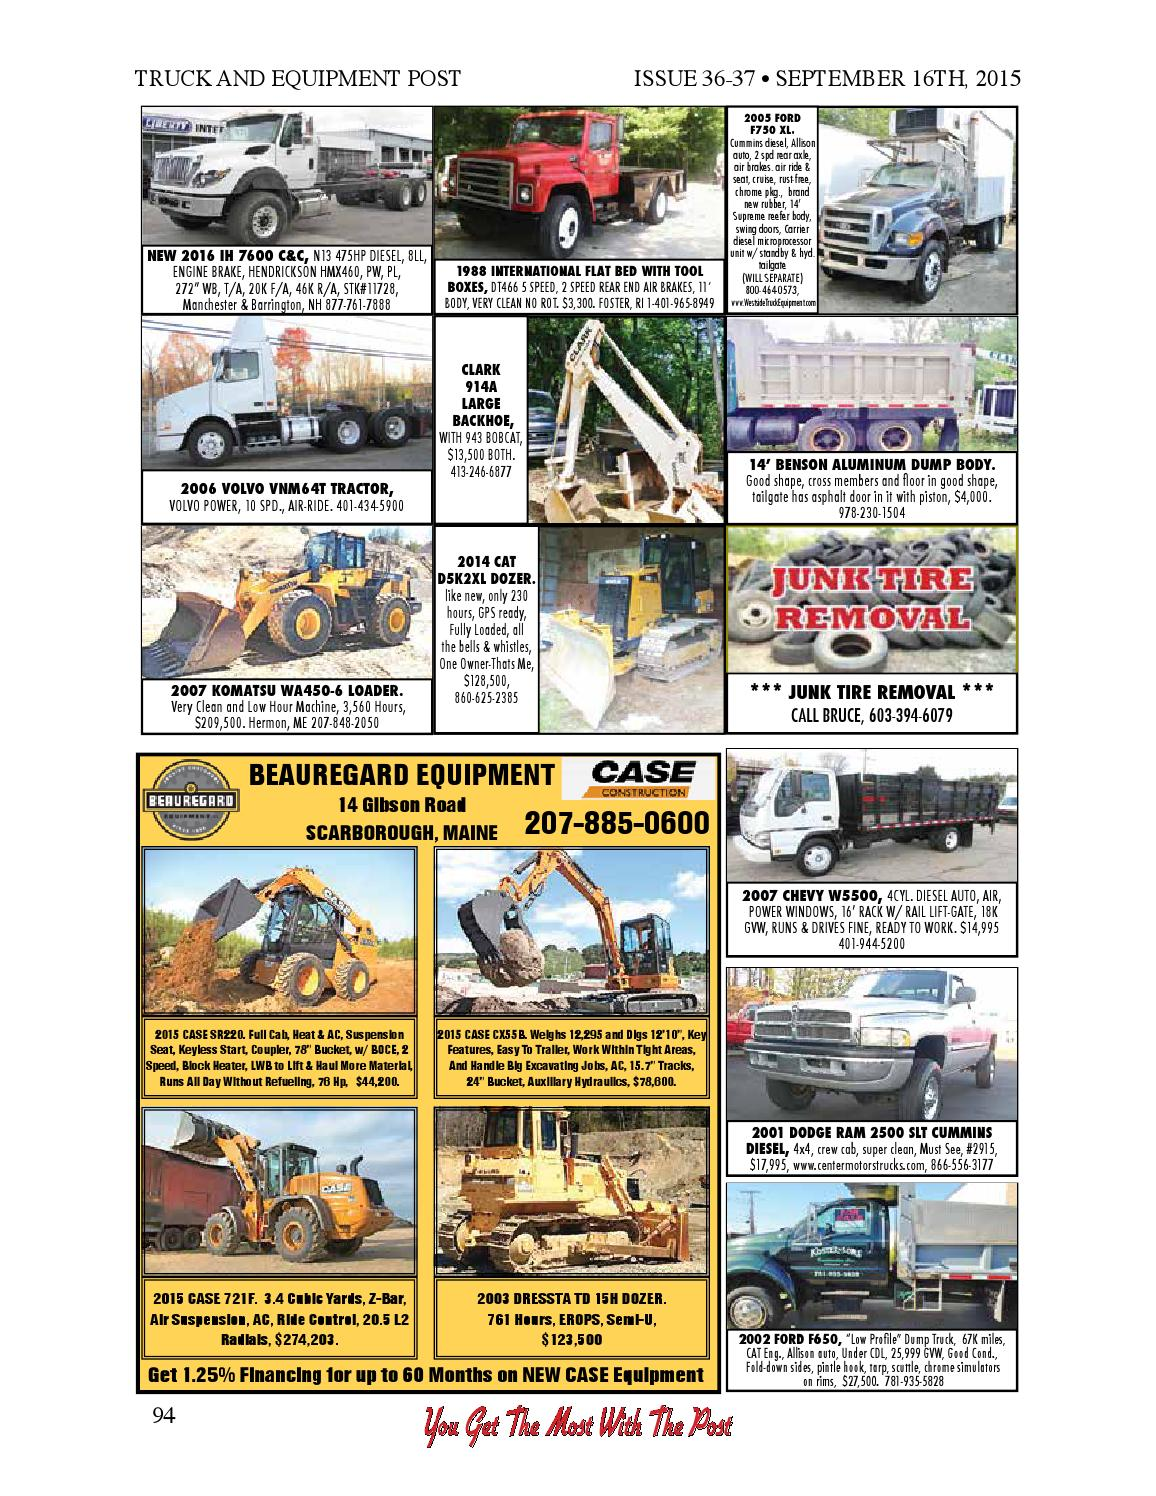 Truck and equipment post 36 37 2015 by 1ClickAway - issuu